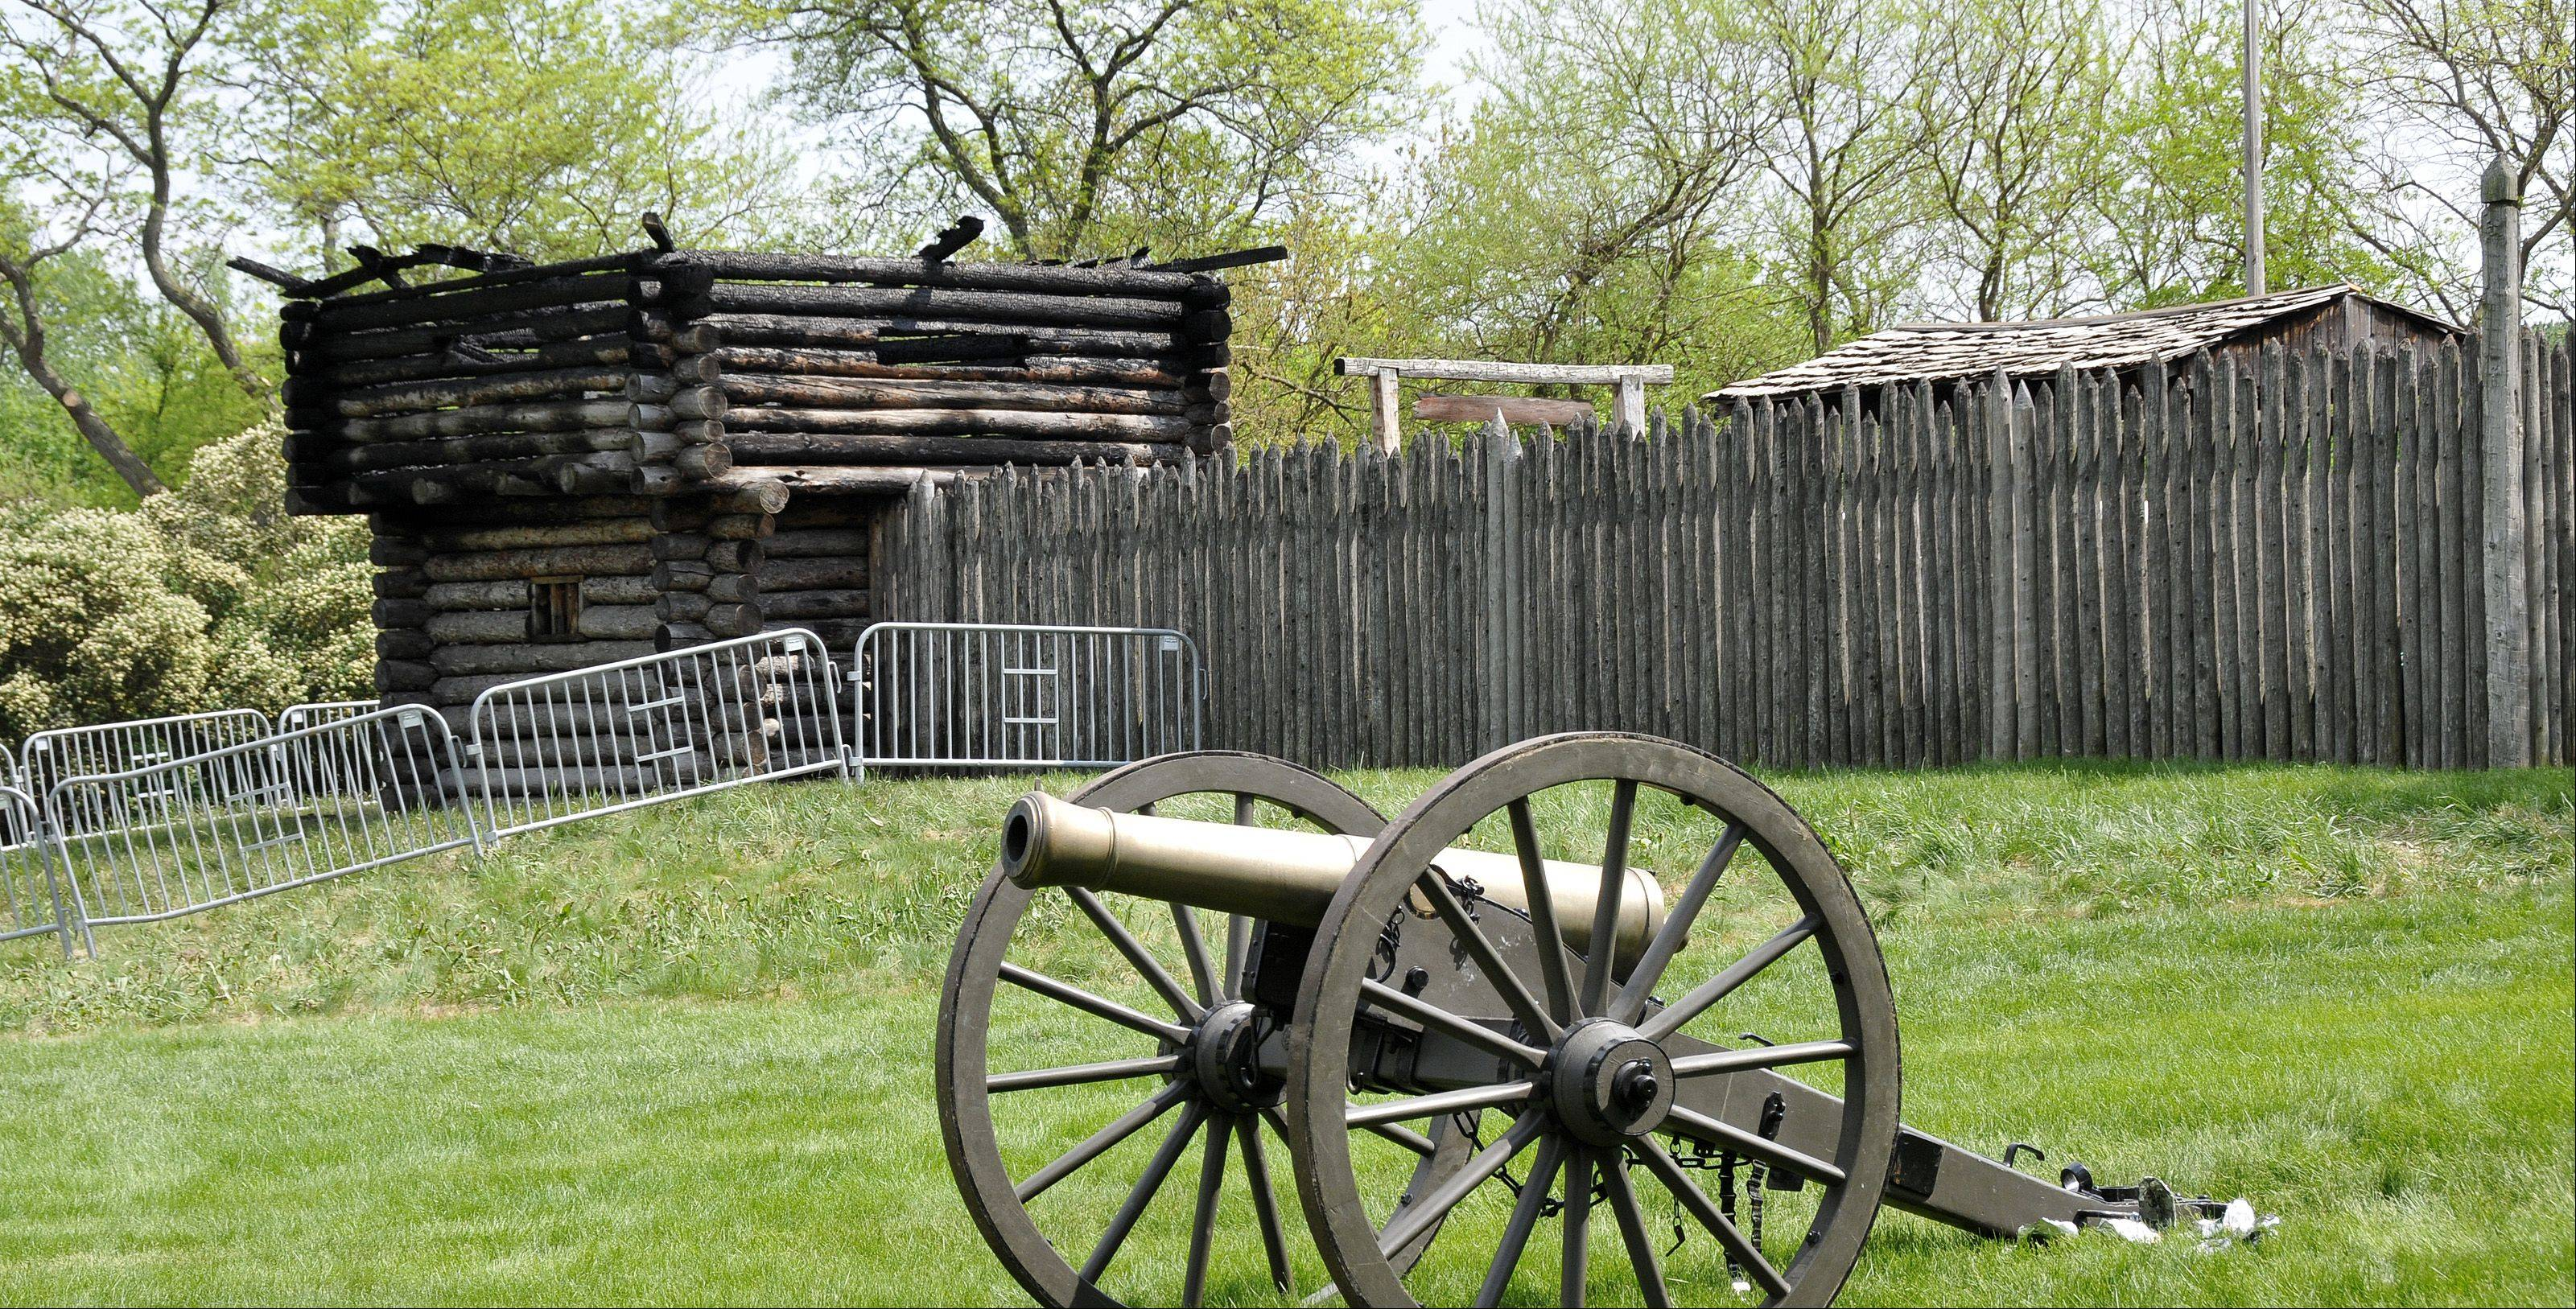 The fire-damaged blockhouse at Fort Payne will likely soon be demolished and replaced with stockade fencing. Naper Settlement officials are unsure if and when it would be replaced.